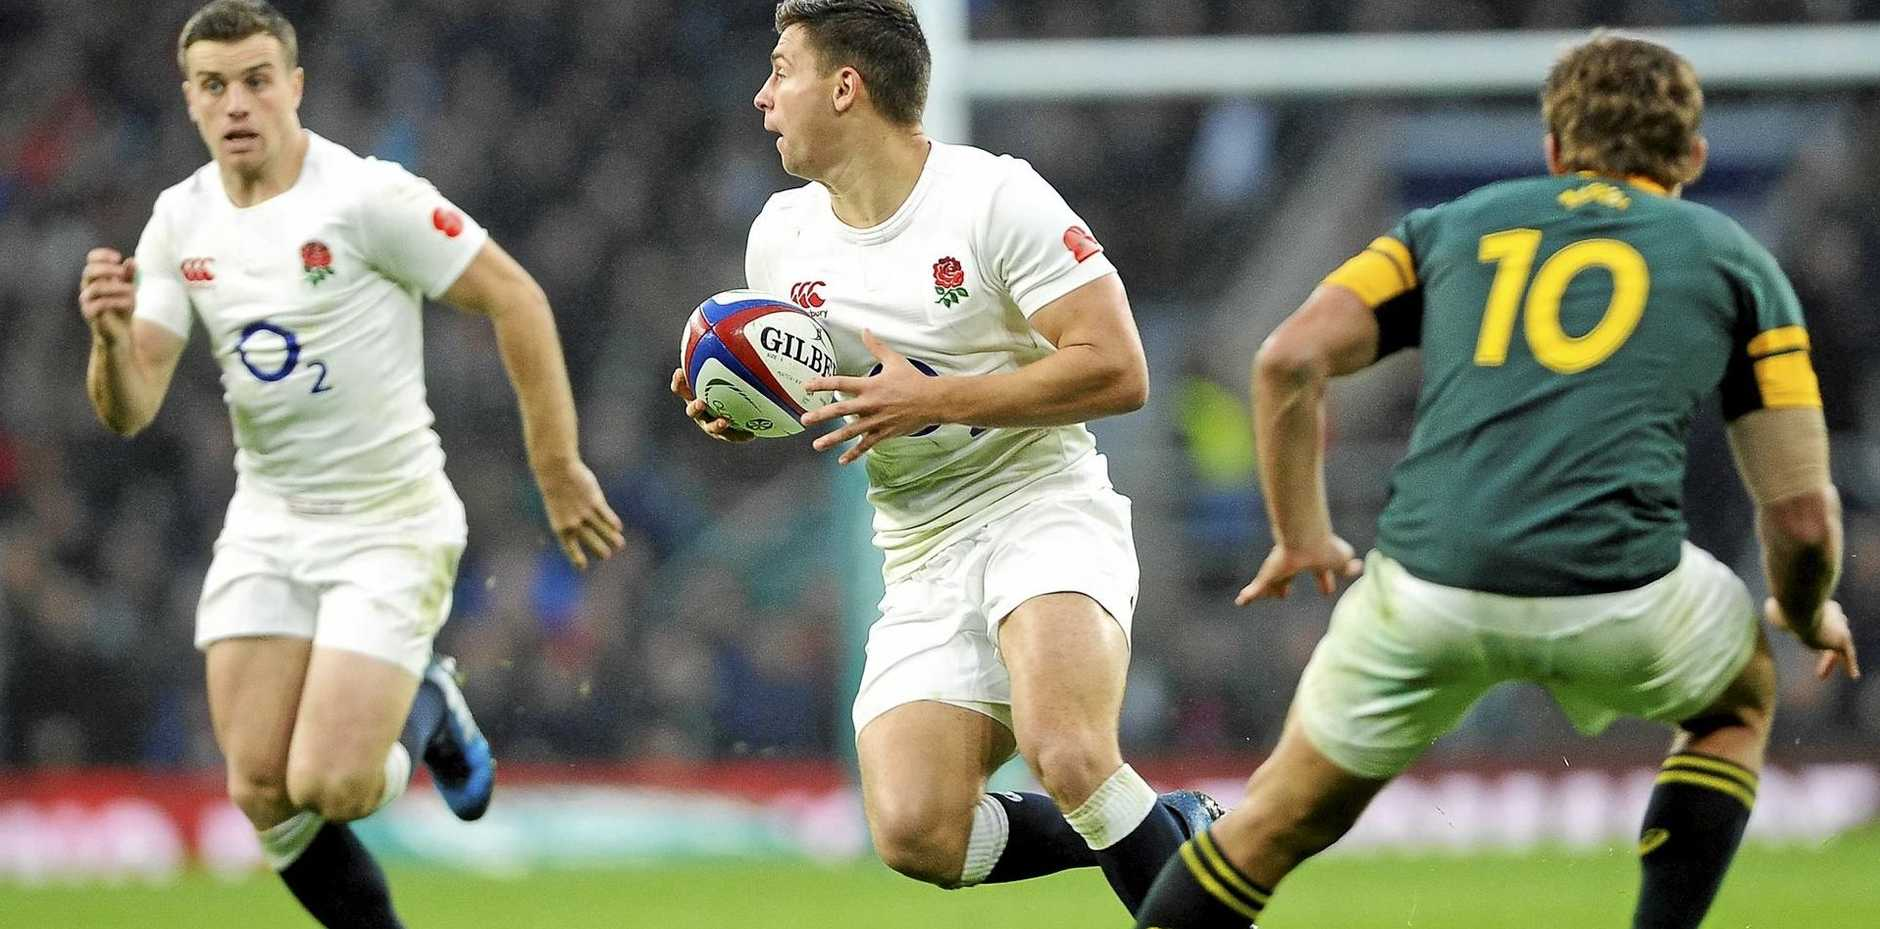 England's Ben Youngs looks to pass to George Ford in the Test against South Africa at Twickenham this month.